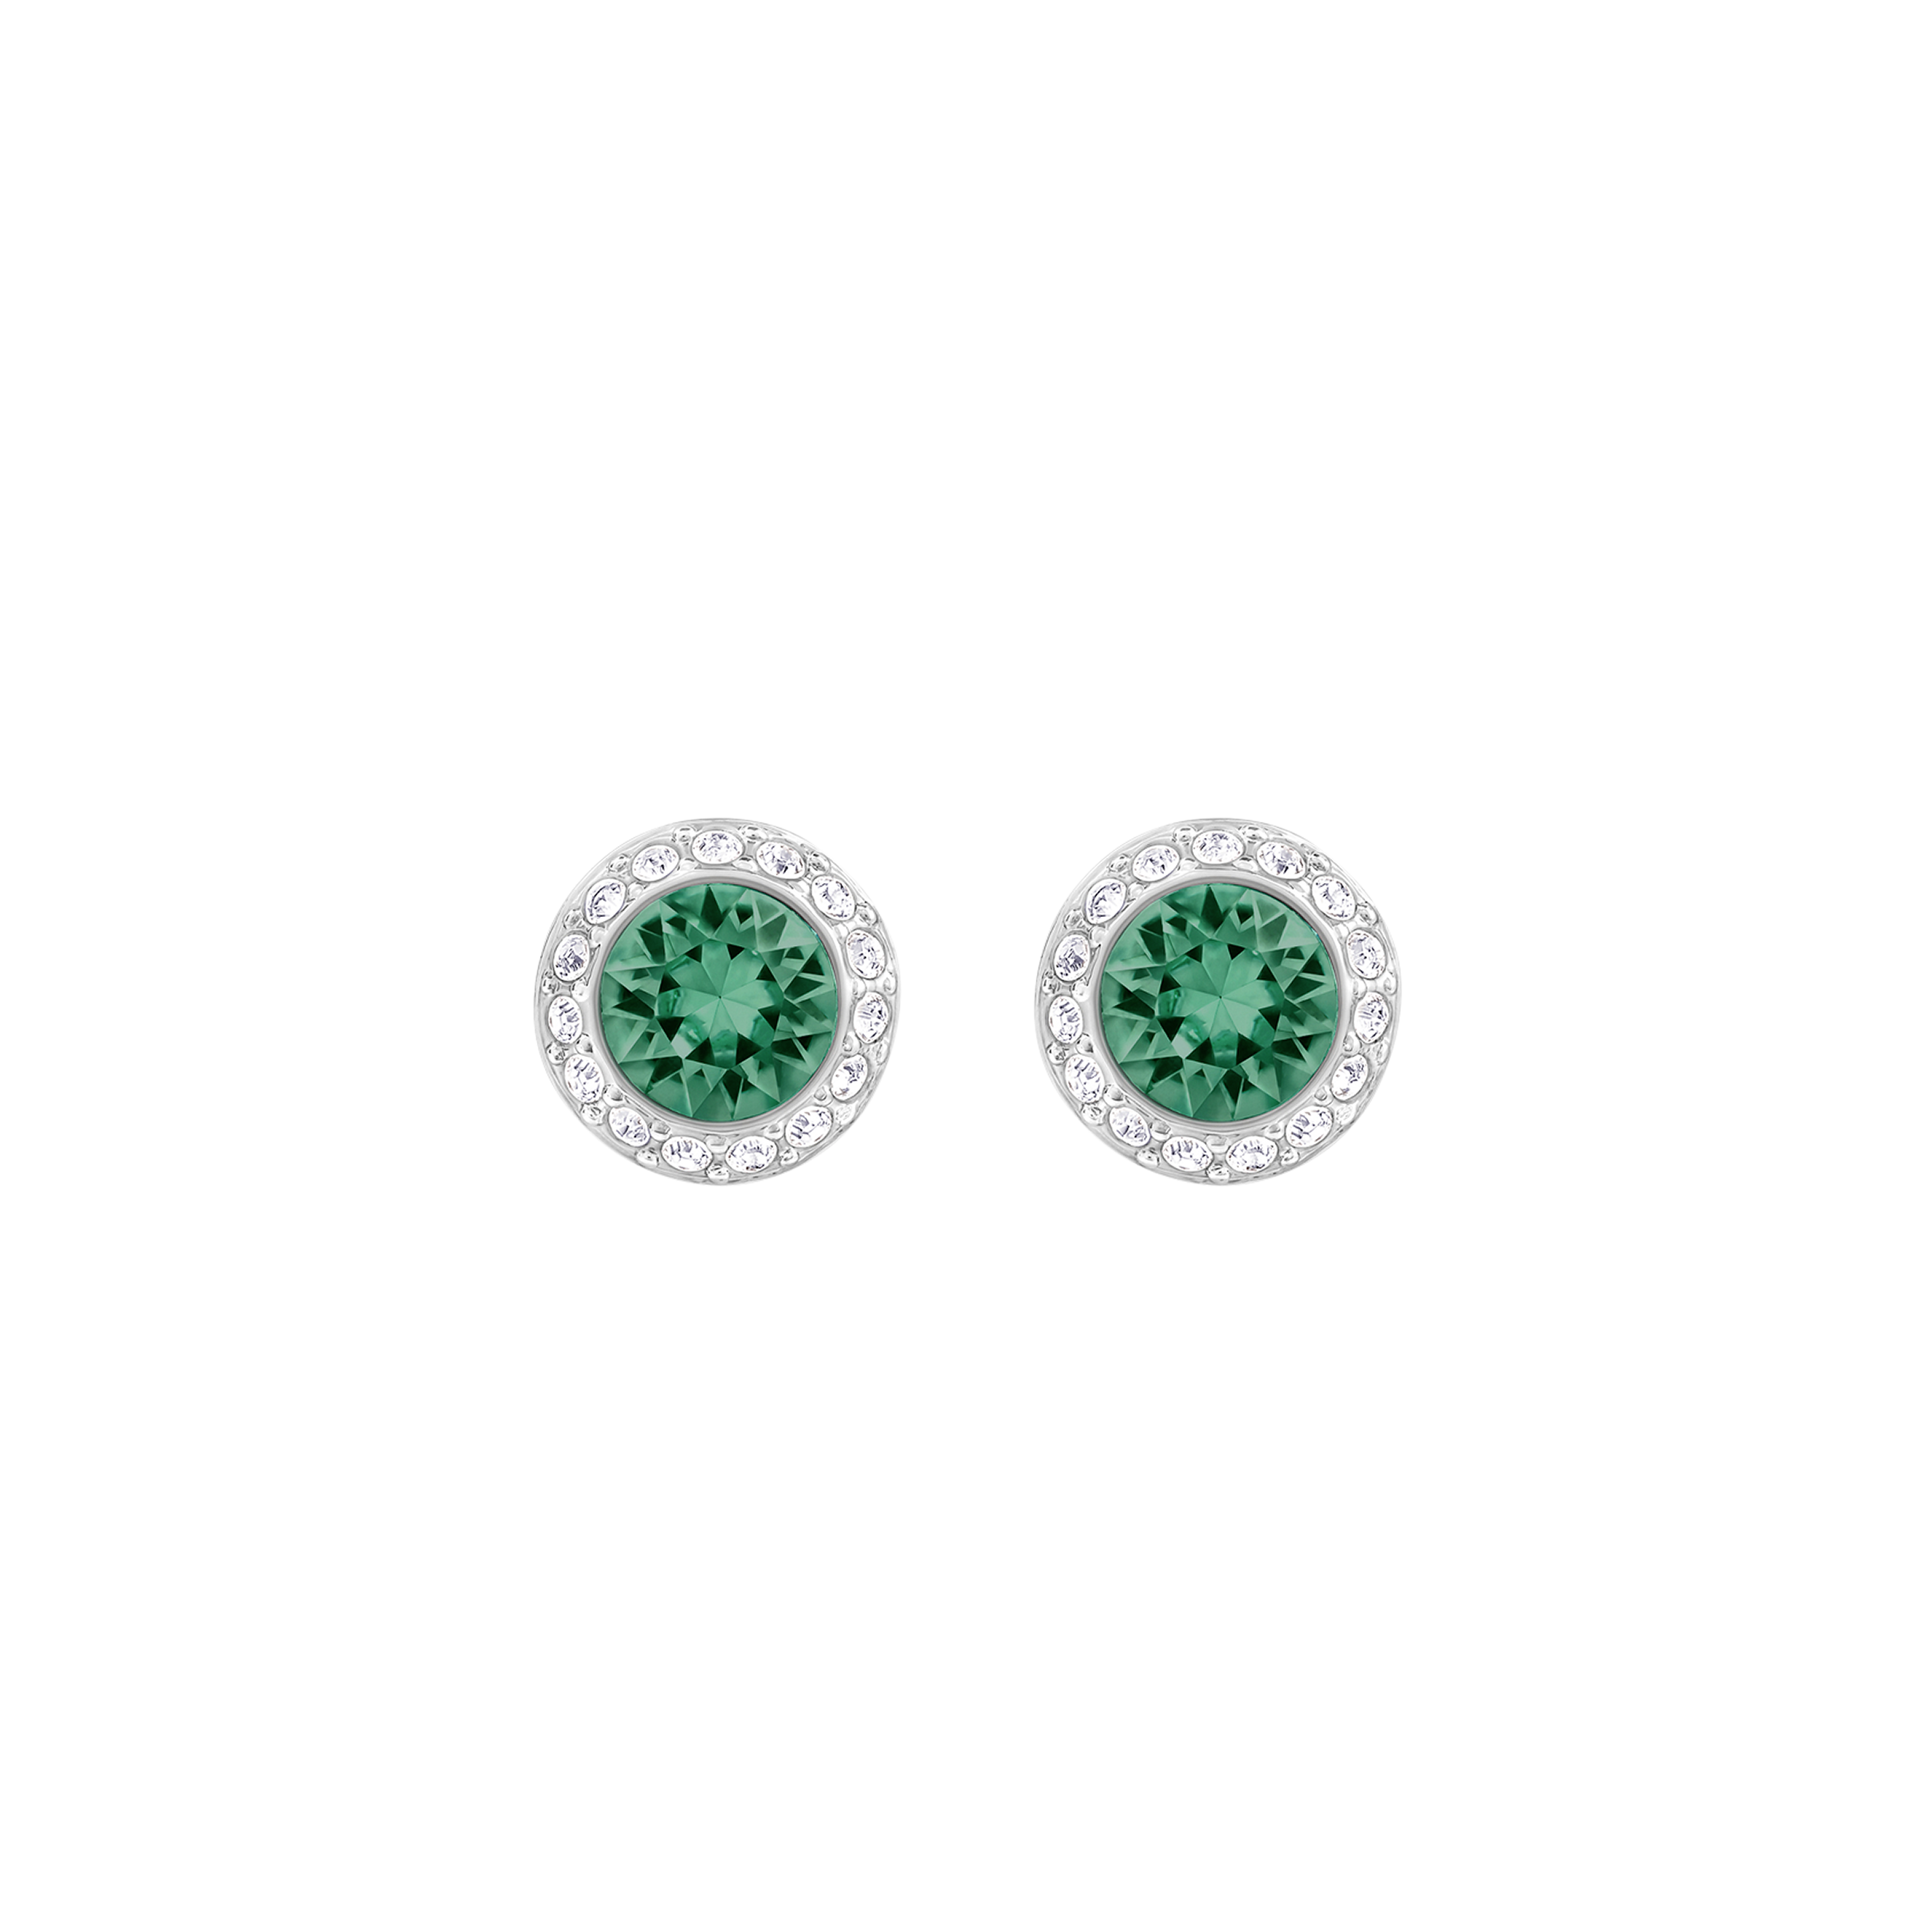 Angelic Pierced Earrings, Green, Rhodium Plating